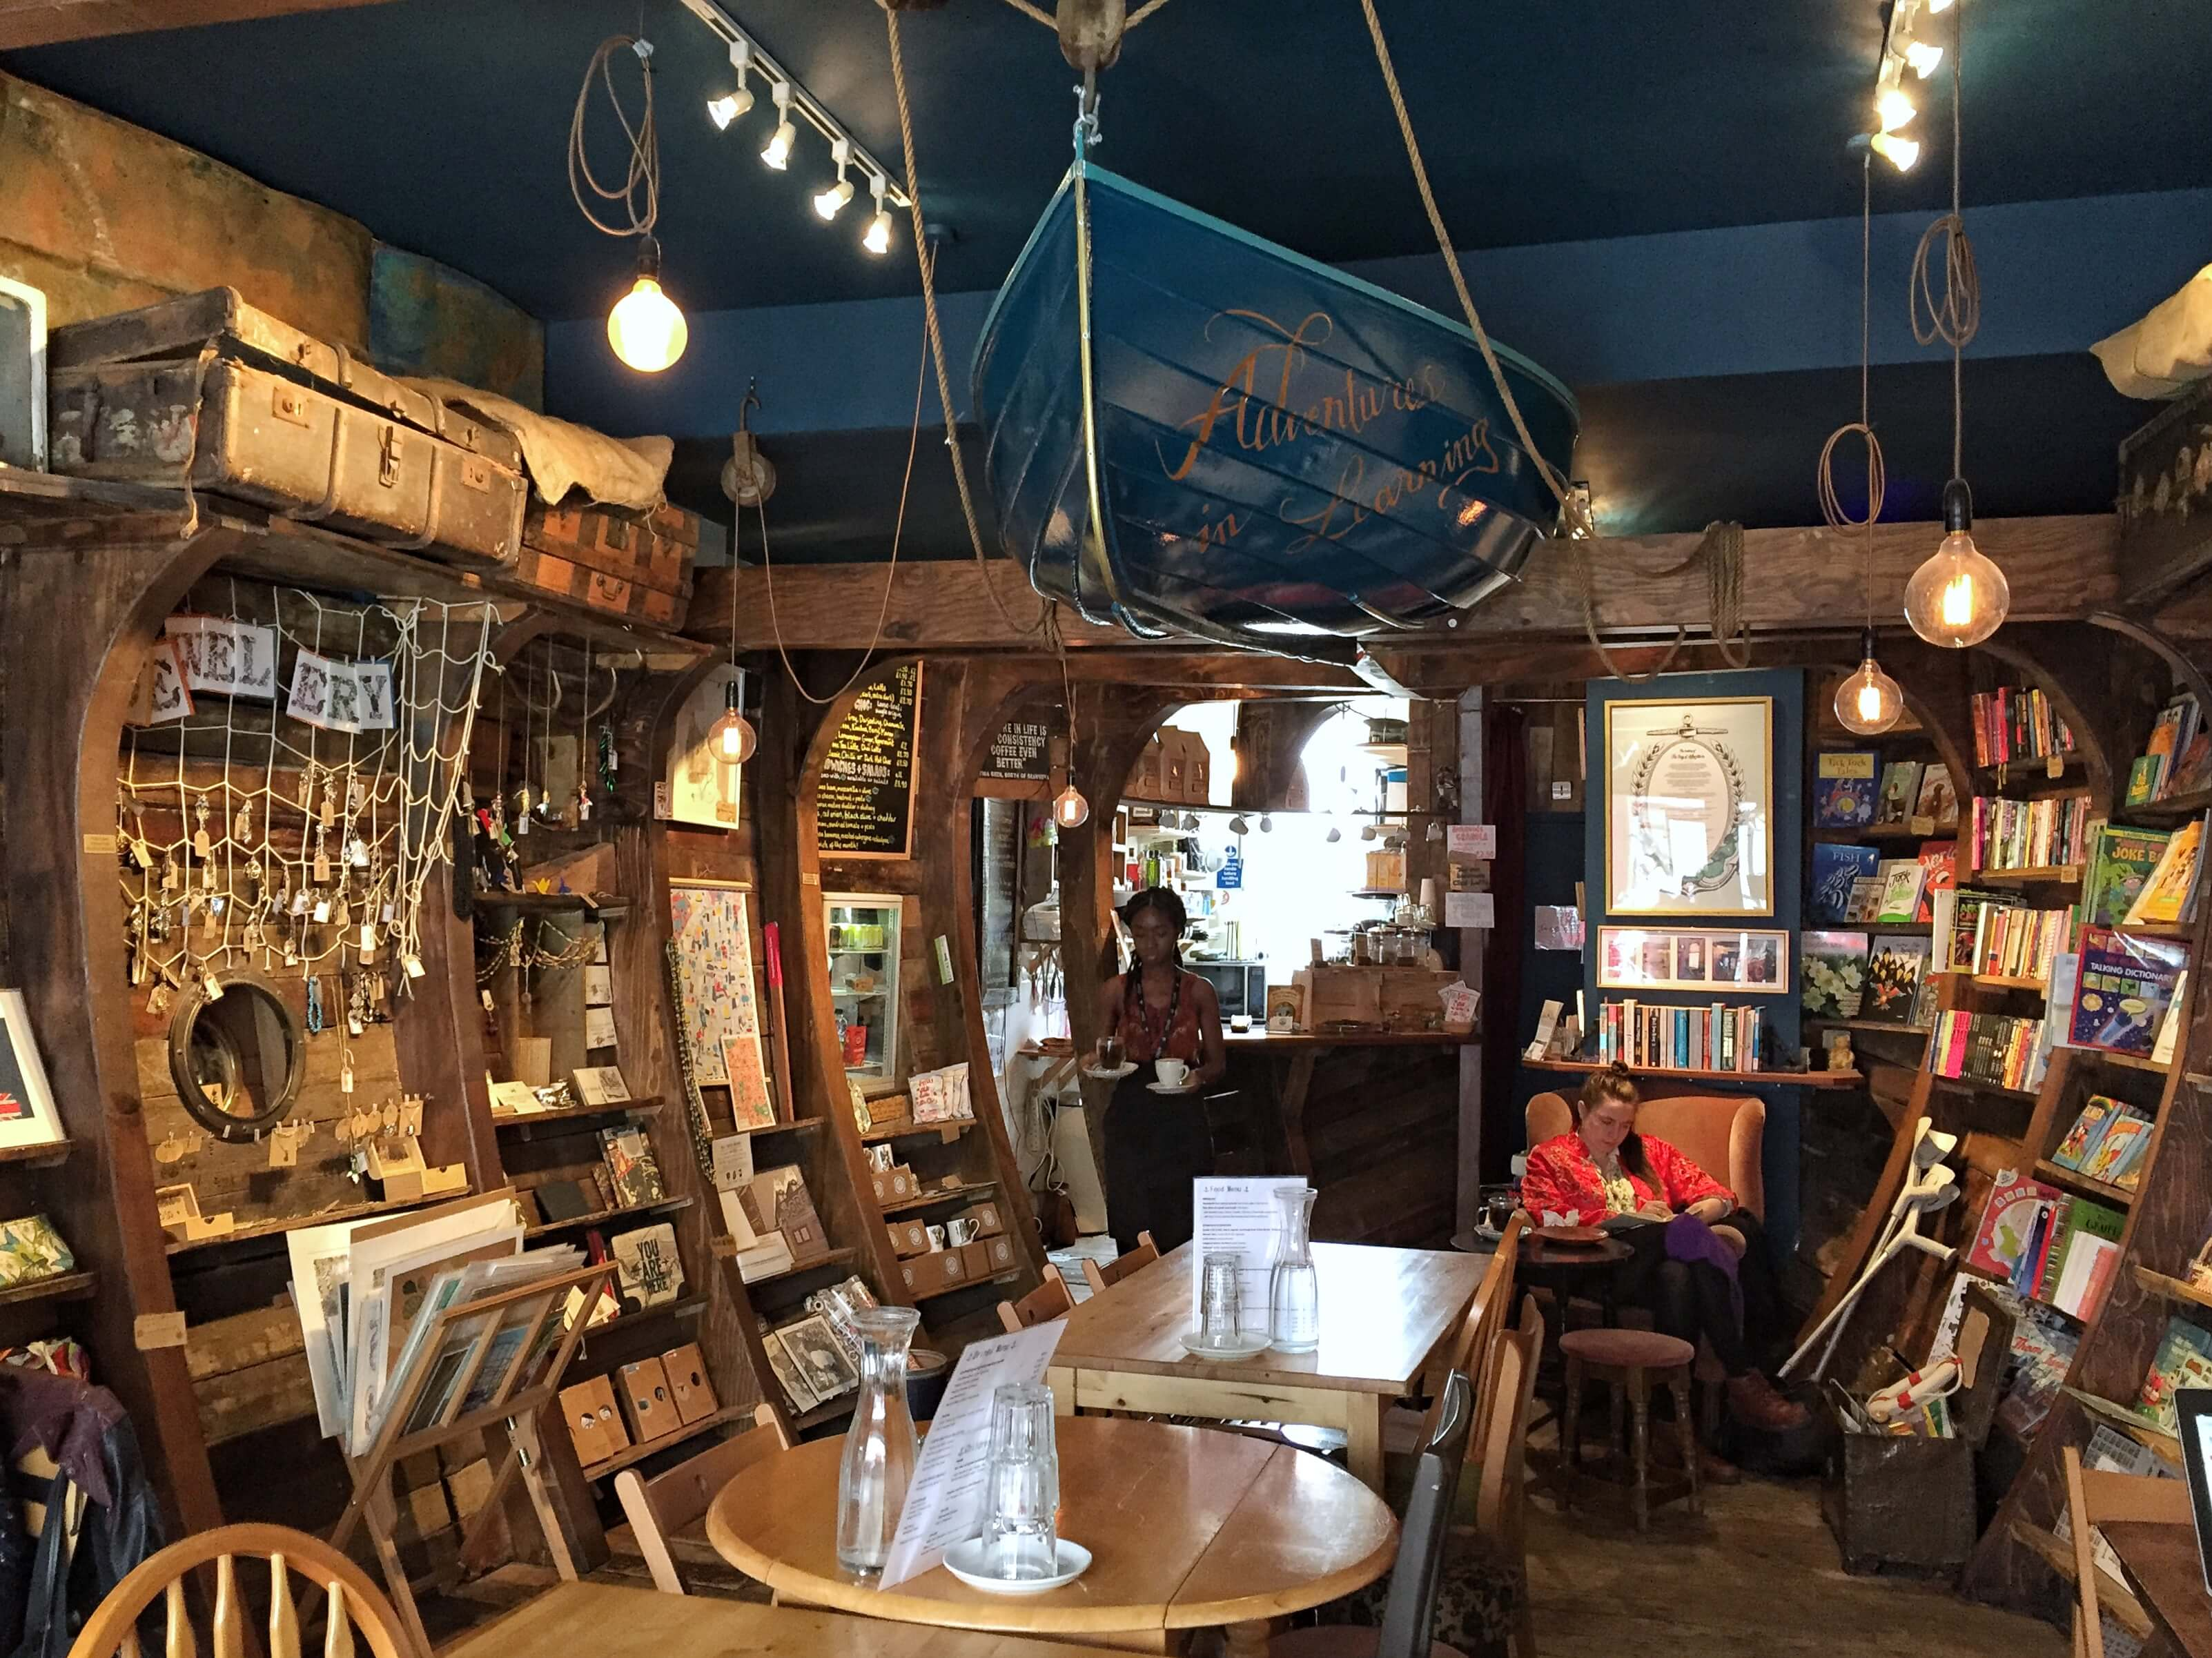 London's prettiest cafes : The Ship of Adventures, Dalston, London